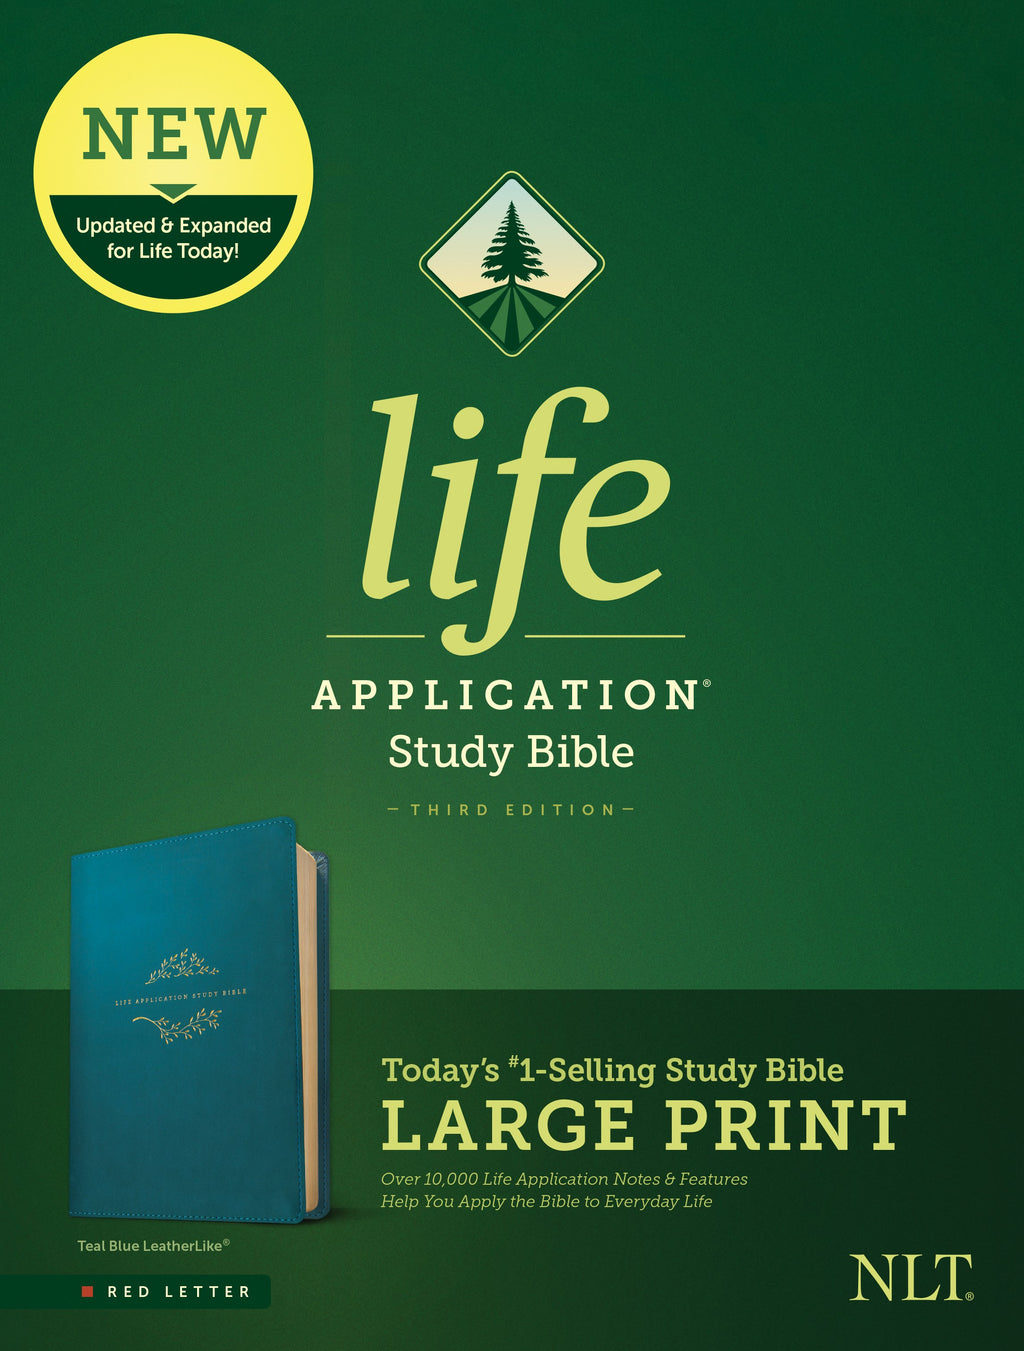 NLT Life Application Study Bible-Large Print (Third Edition) (RL)-Teal Blue LeatherLike